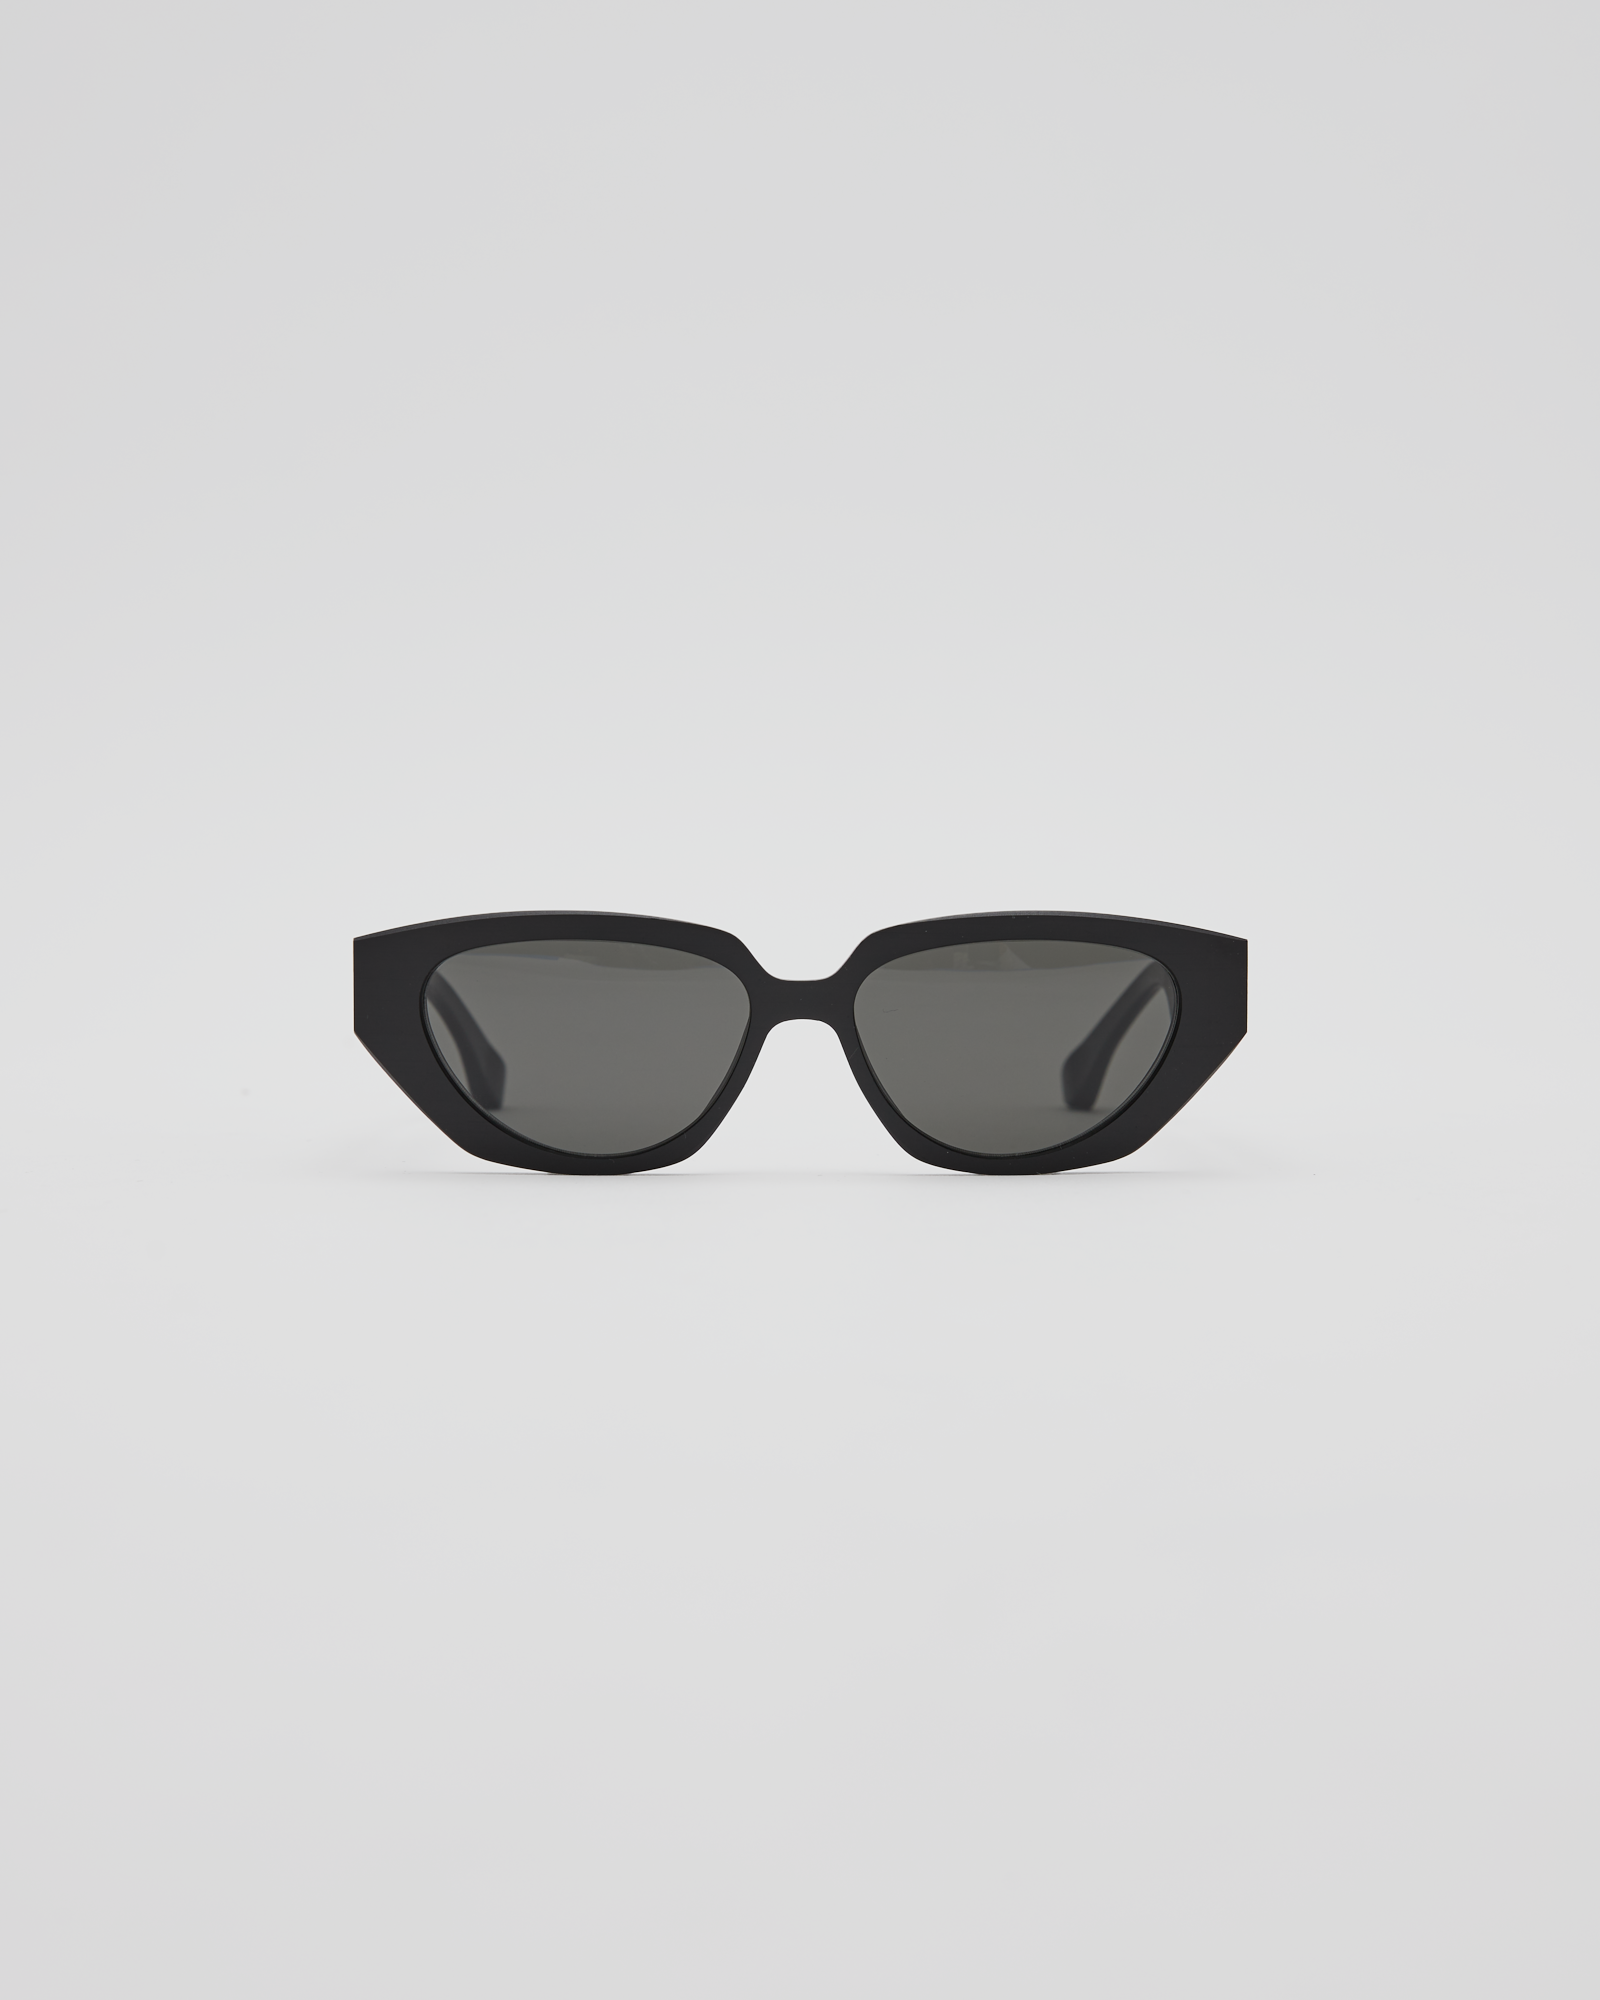 MMRAW015 Sunglasses in Raw Black / Dark Gray Solid